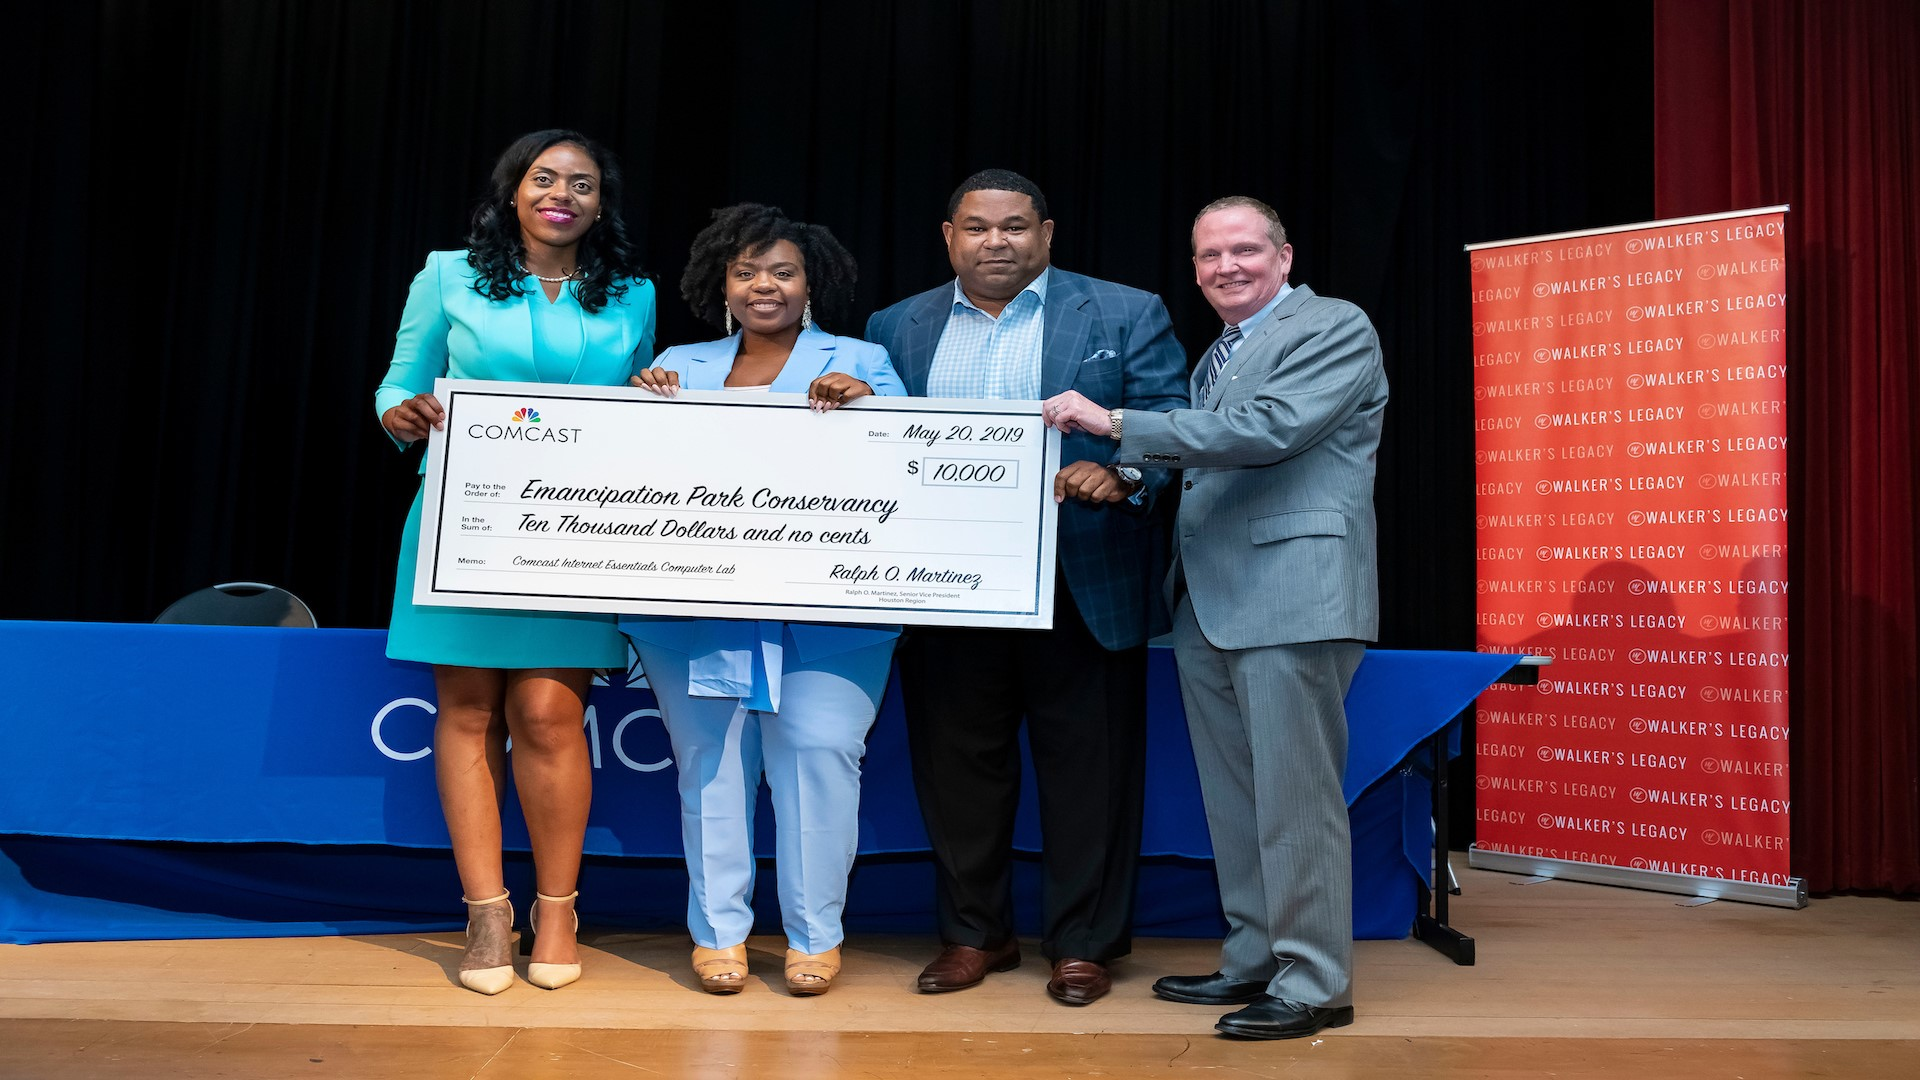 Comcast donates k to Emancipation Park Conservancy at Women in Tech Event